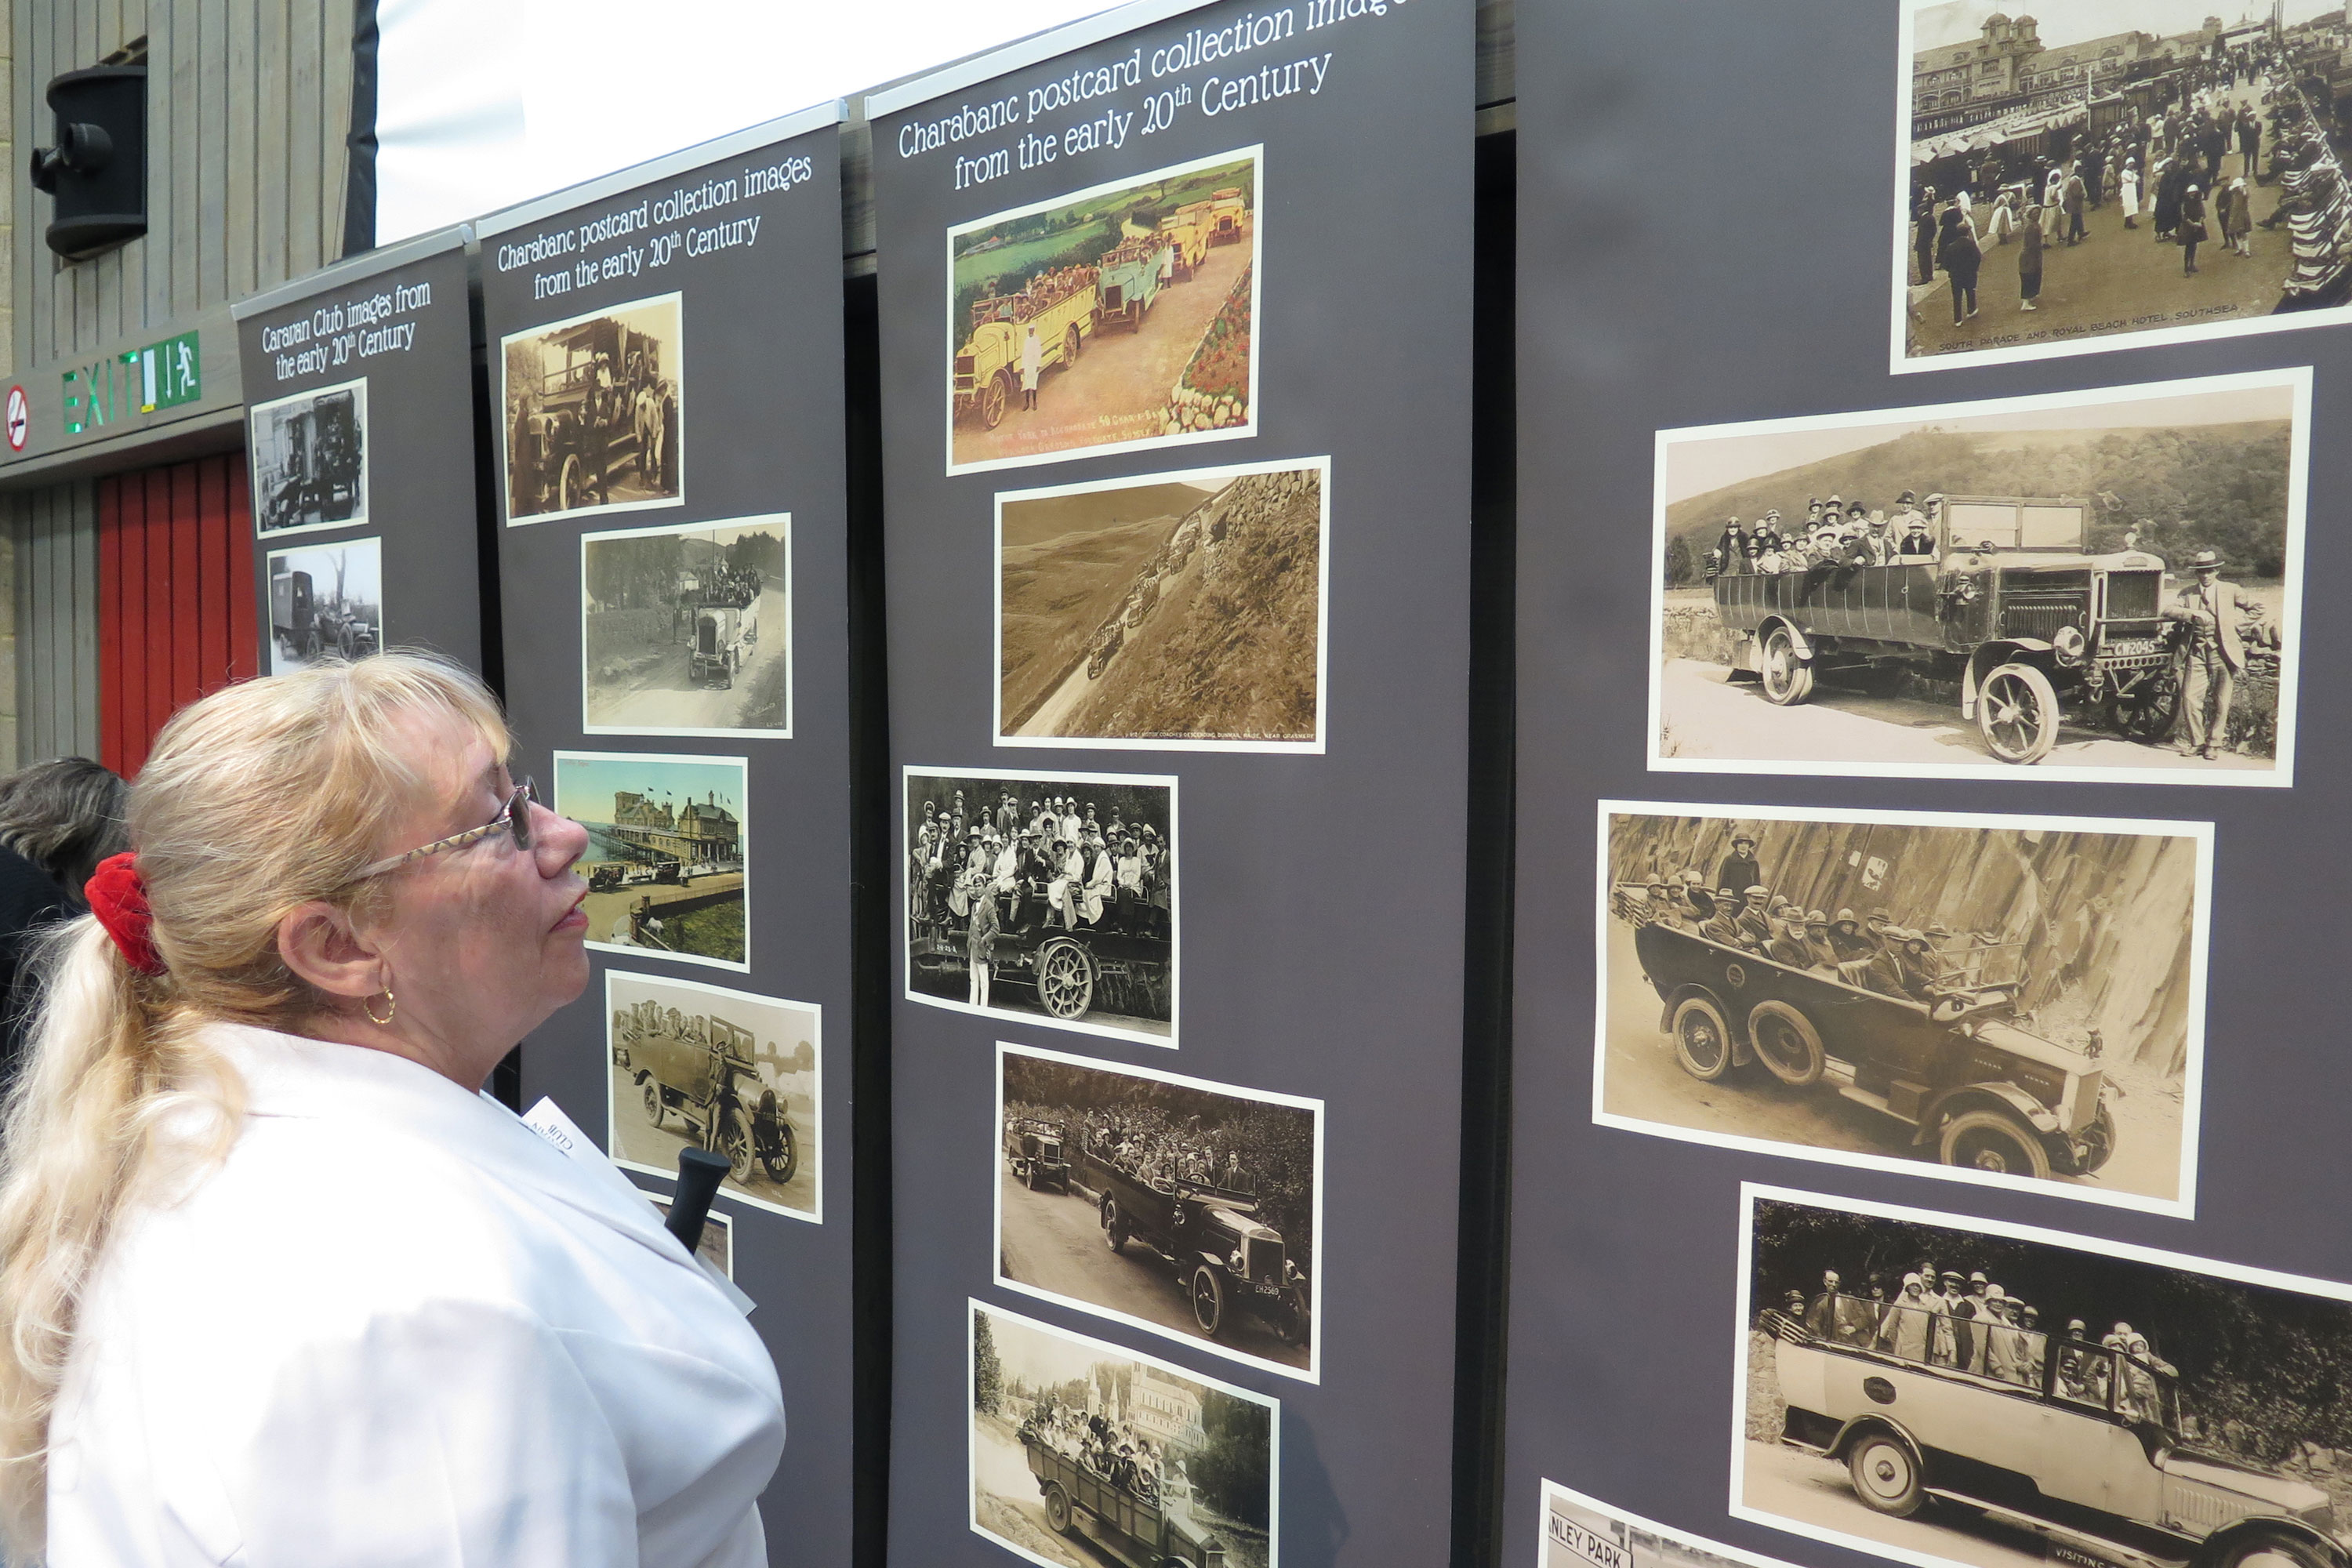 Lady looking at charabanc exhibition panels